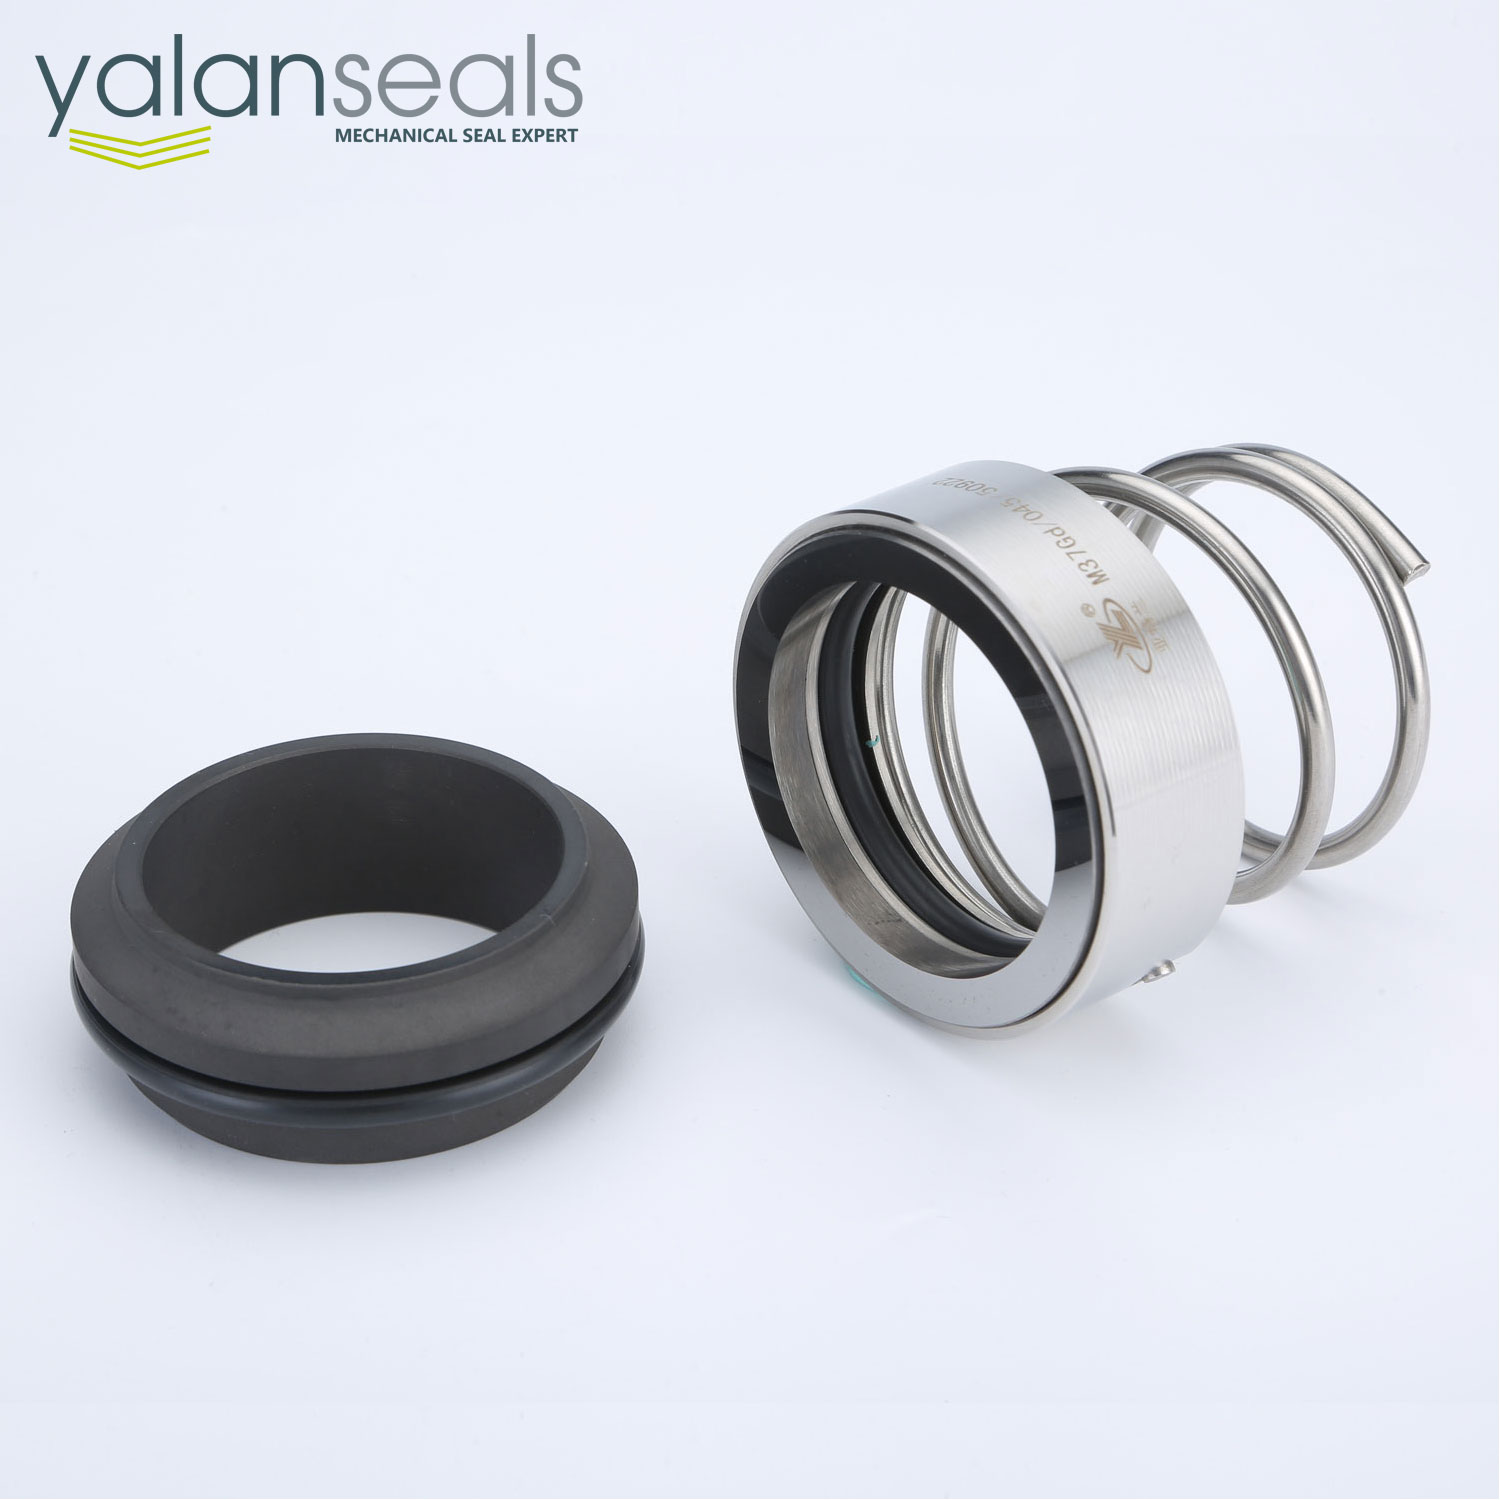 M37 Mechanical Seal